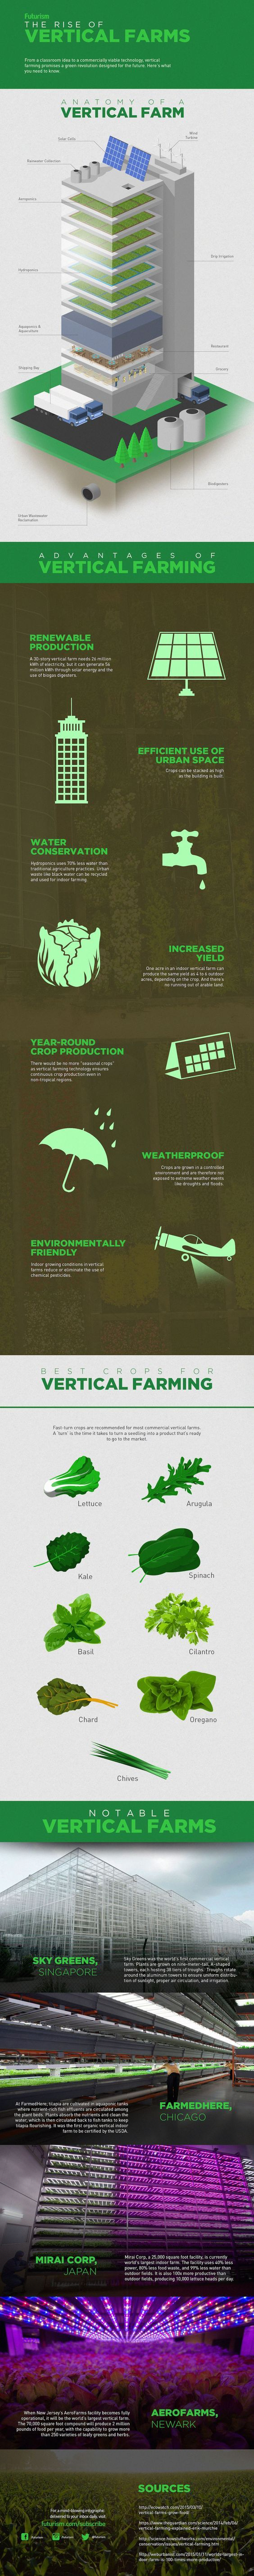 Check out Vertical Farming For Compact Spaces | Types of Farming at https://homesteading.com/vertical-farming/